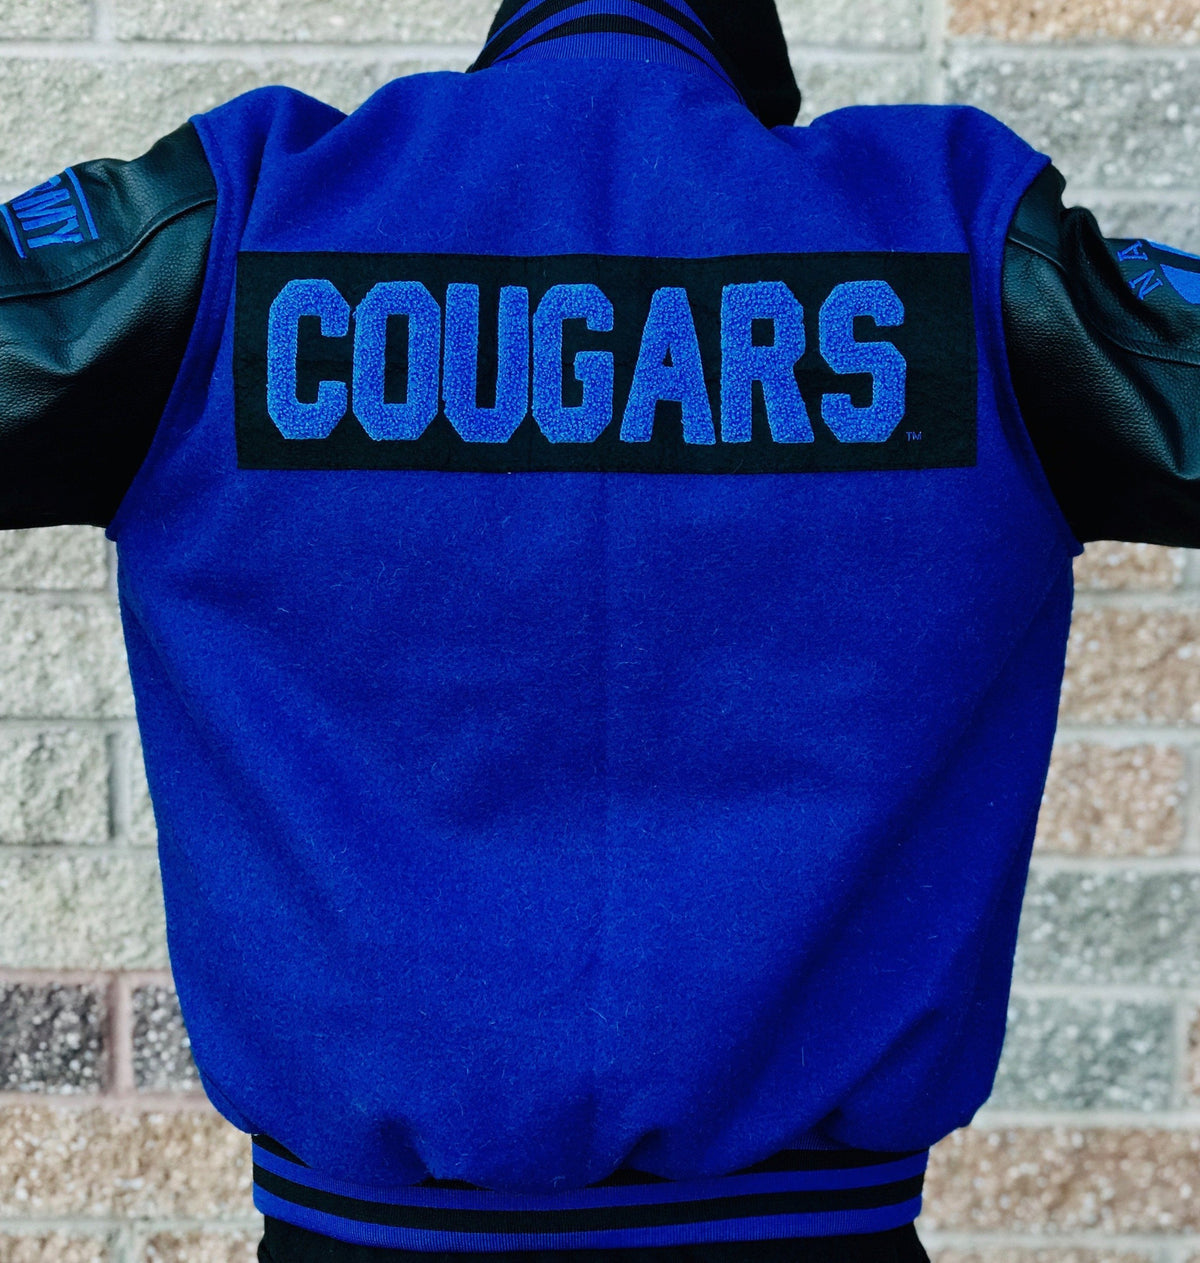 Limited Edition BYU Letterman Jacket - Black and Royal